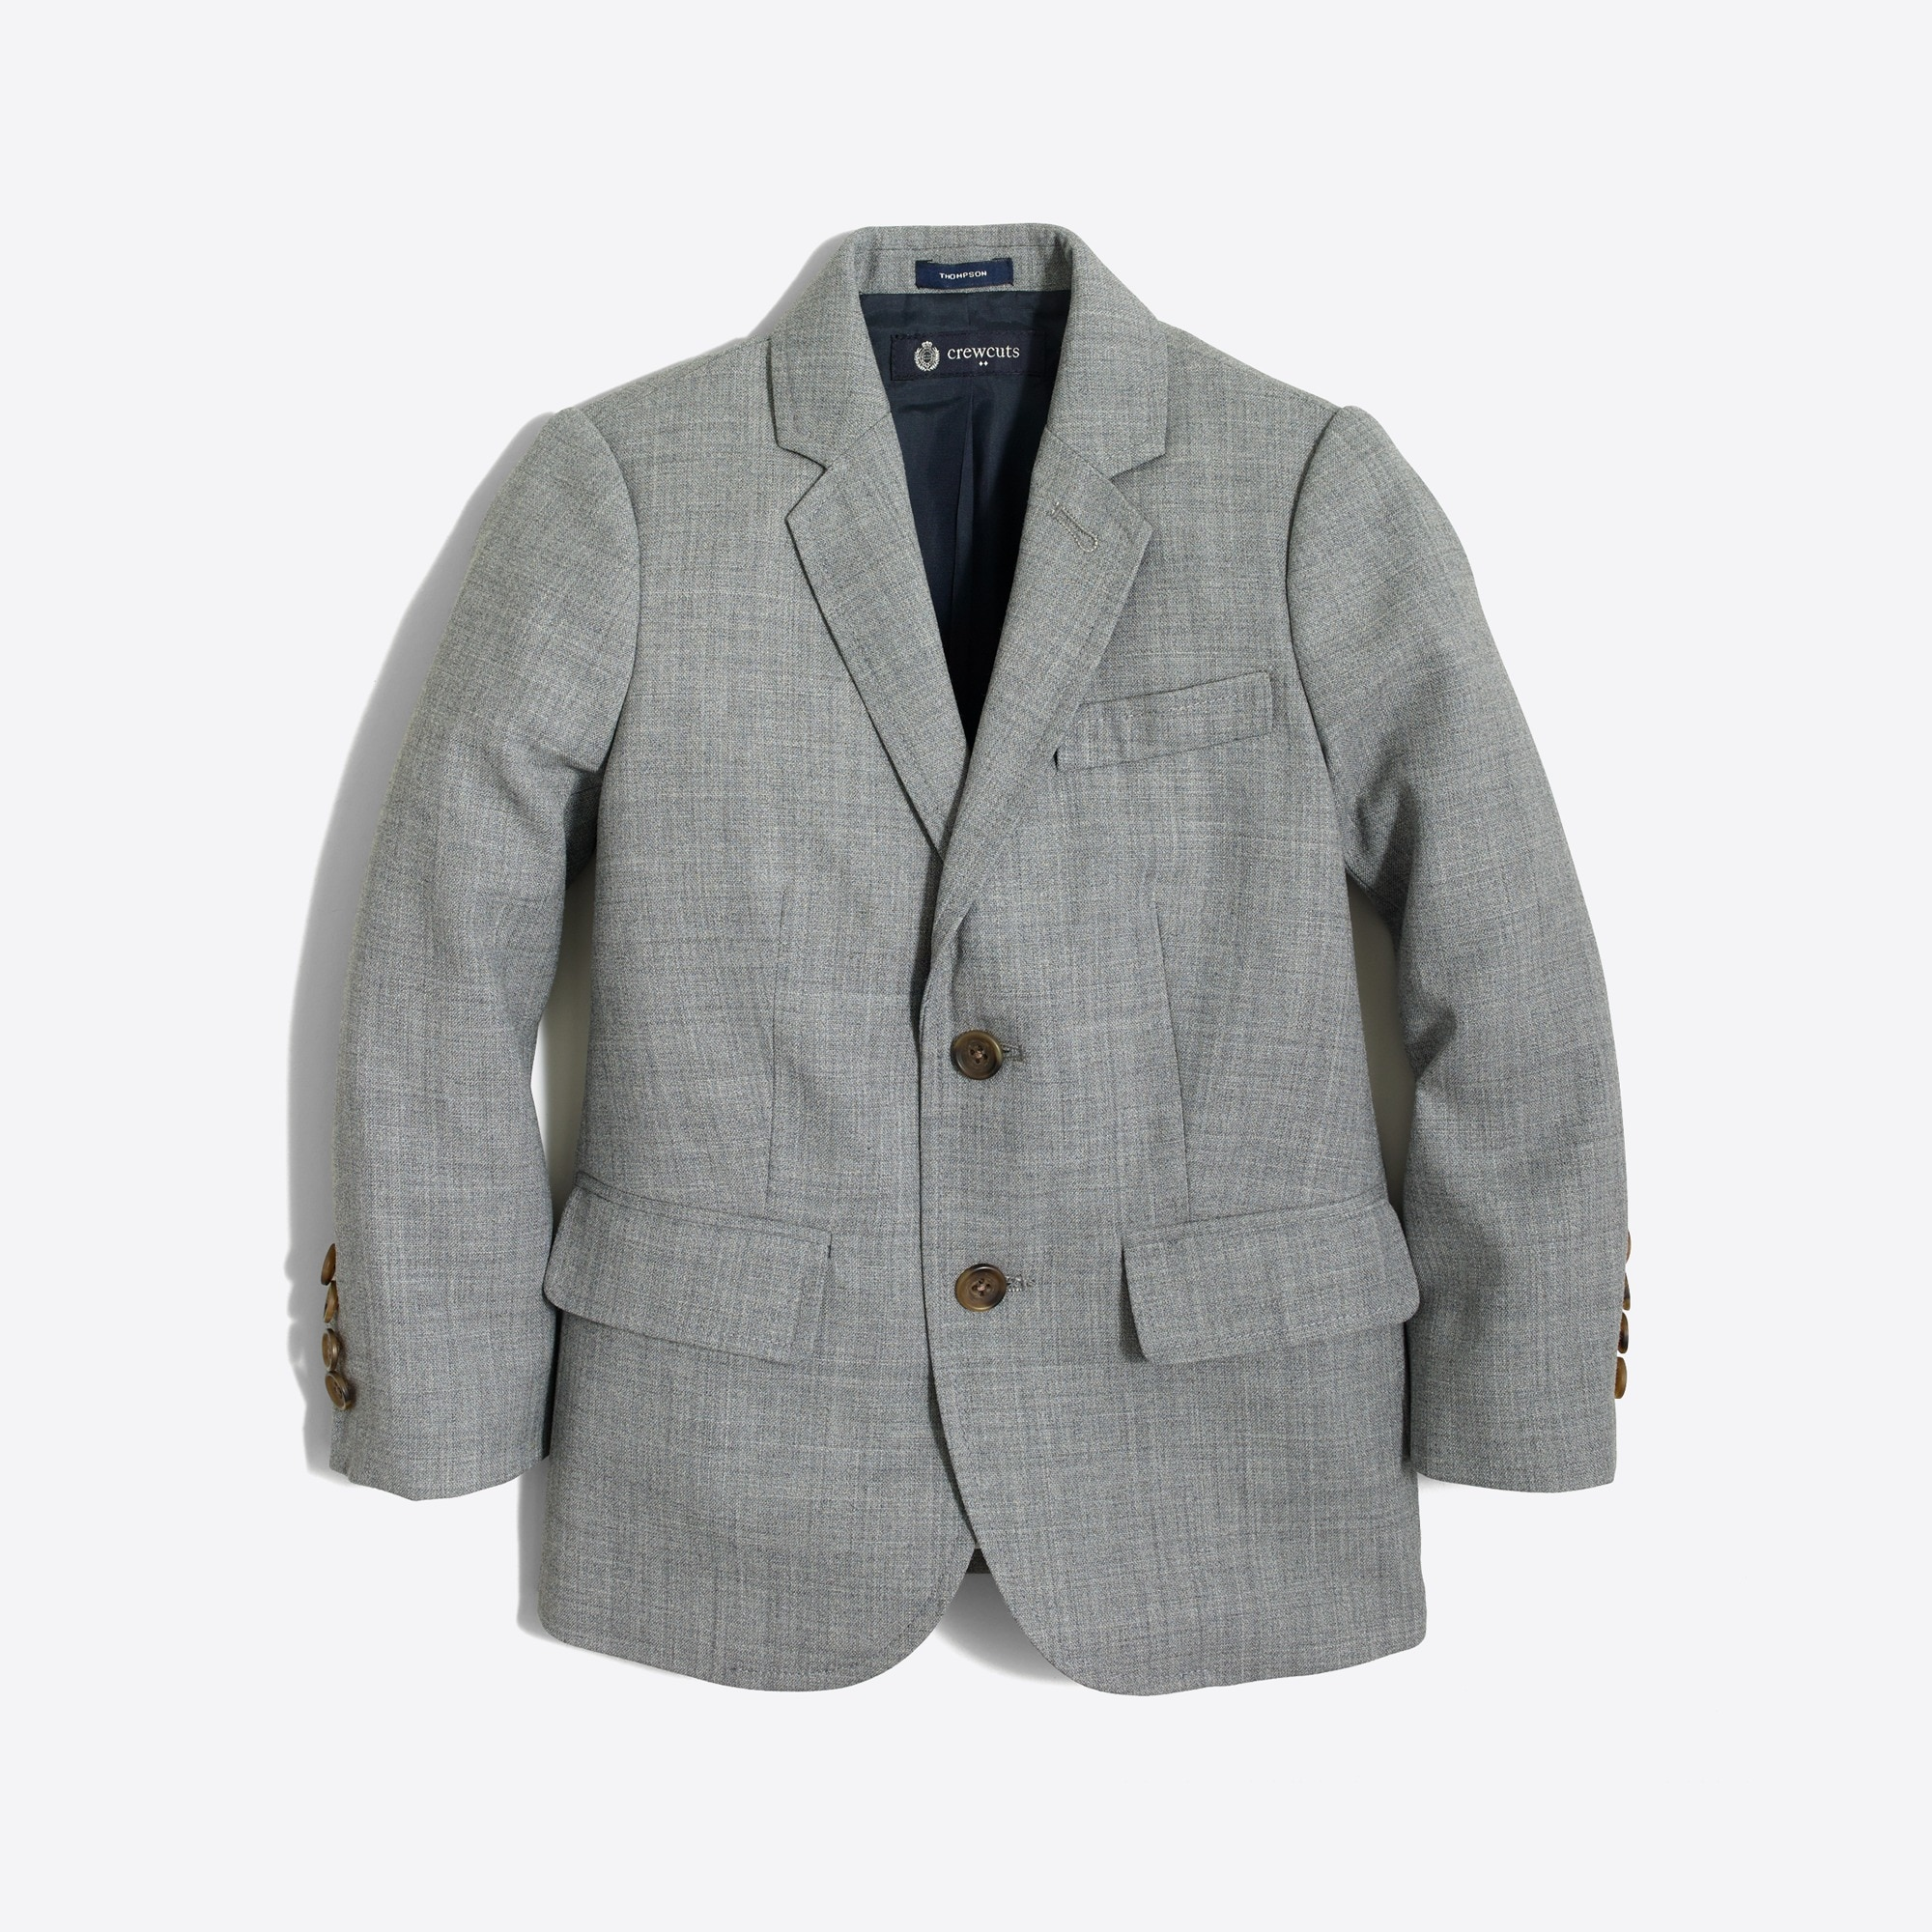 Image 1 for Boys' Thompson Voyager suit jacket